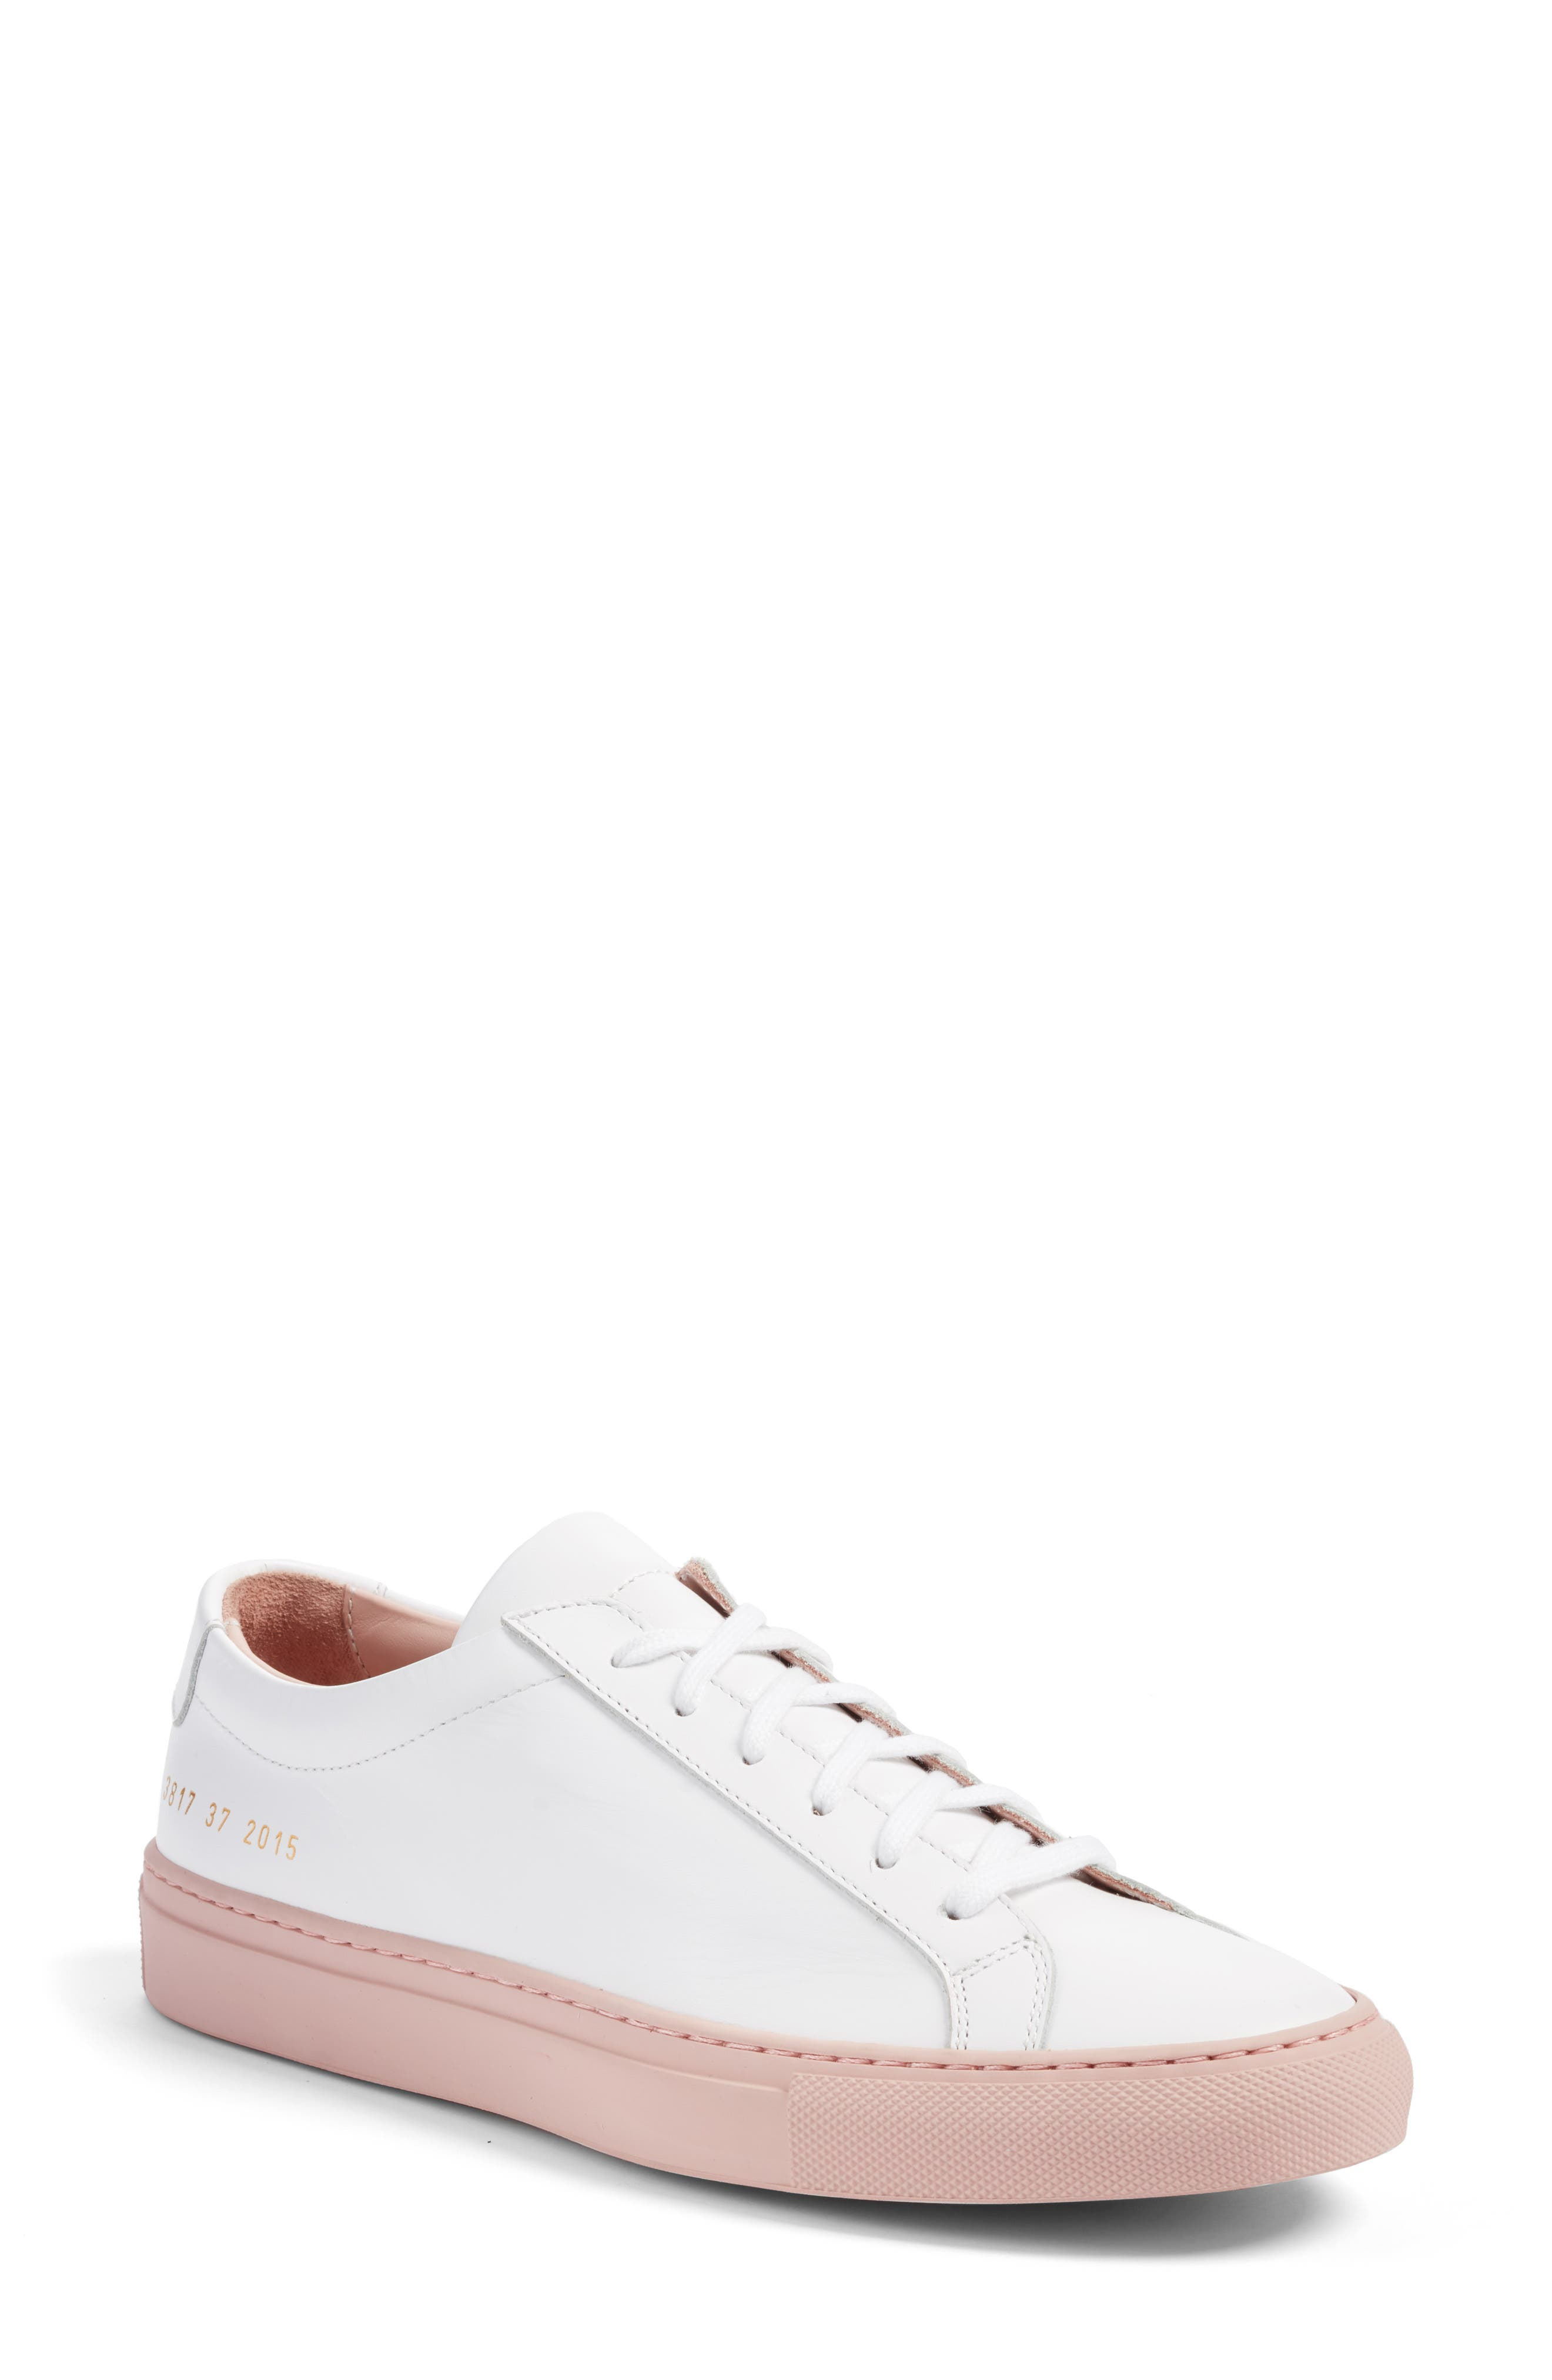 Alternate Image 1 Selected - Common Projects Achilles Sneaker (Women)